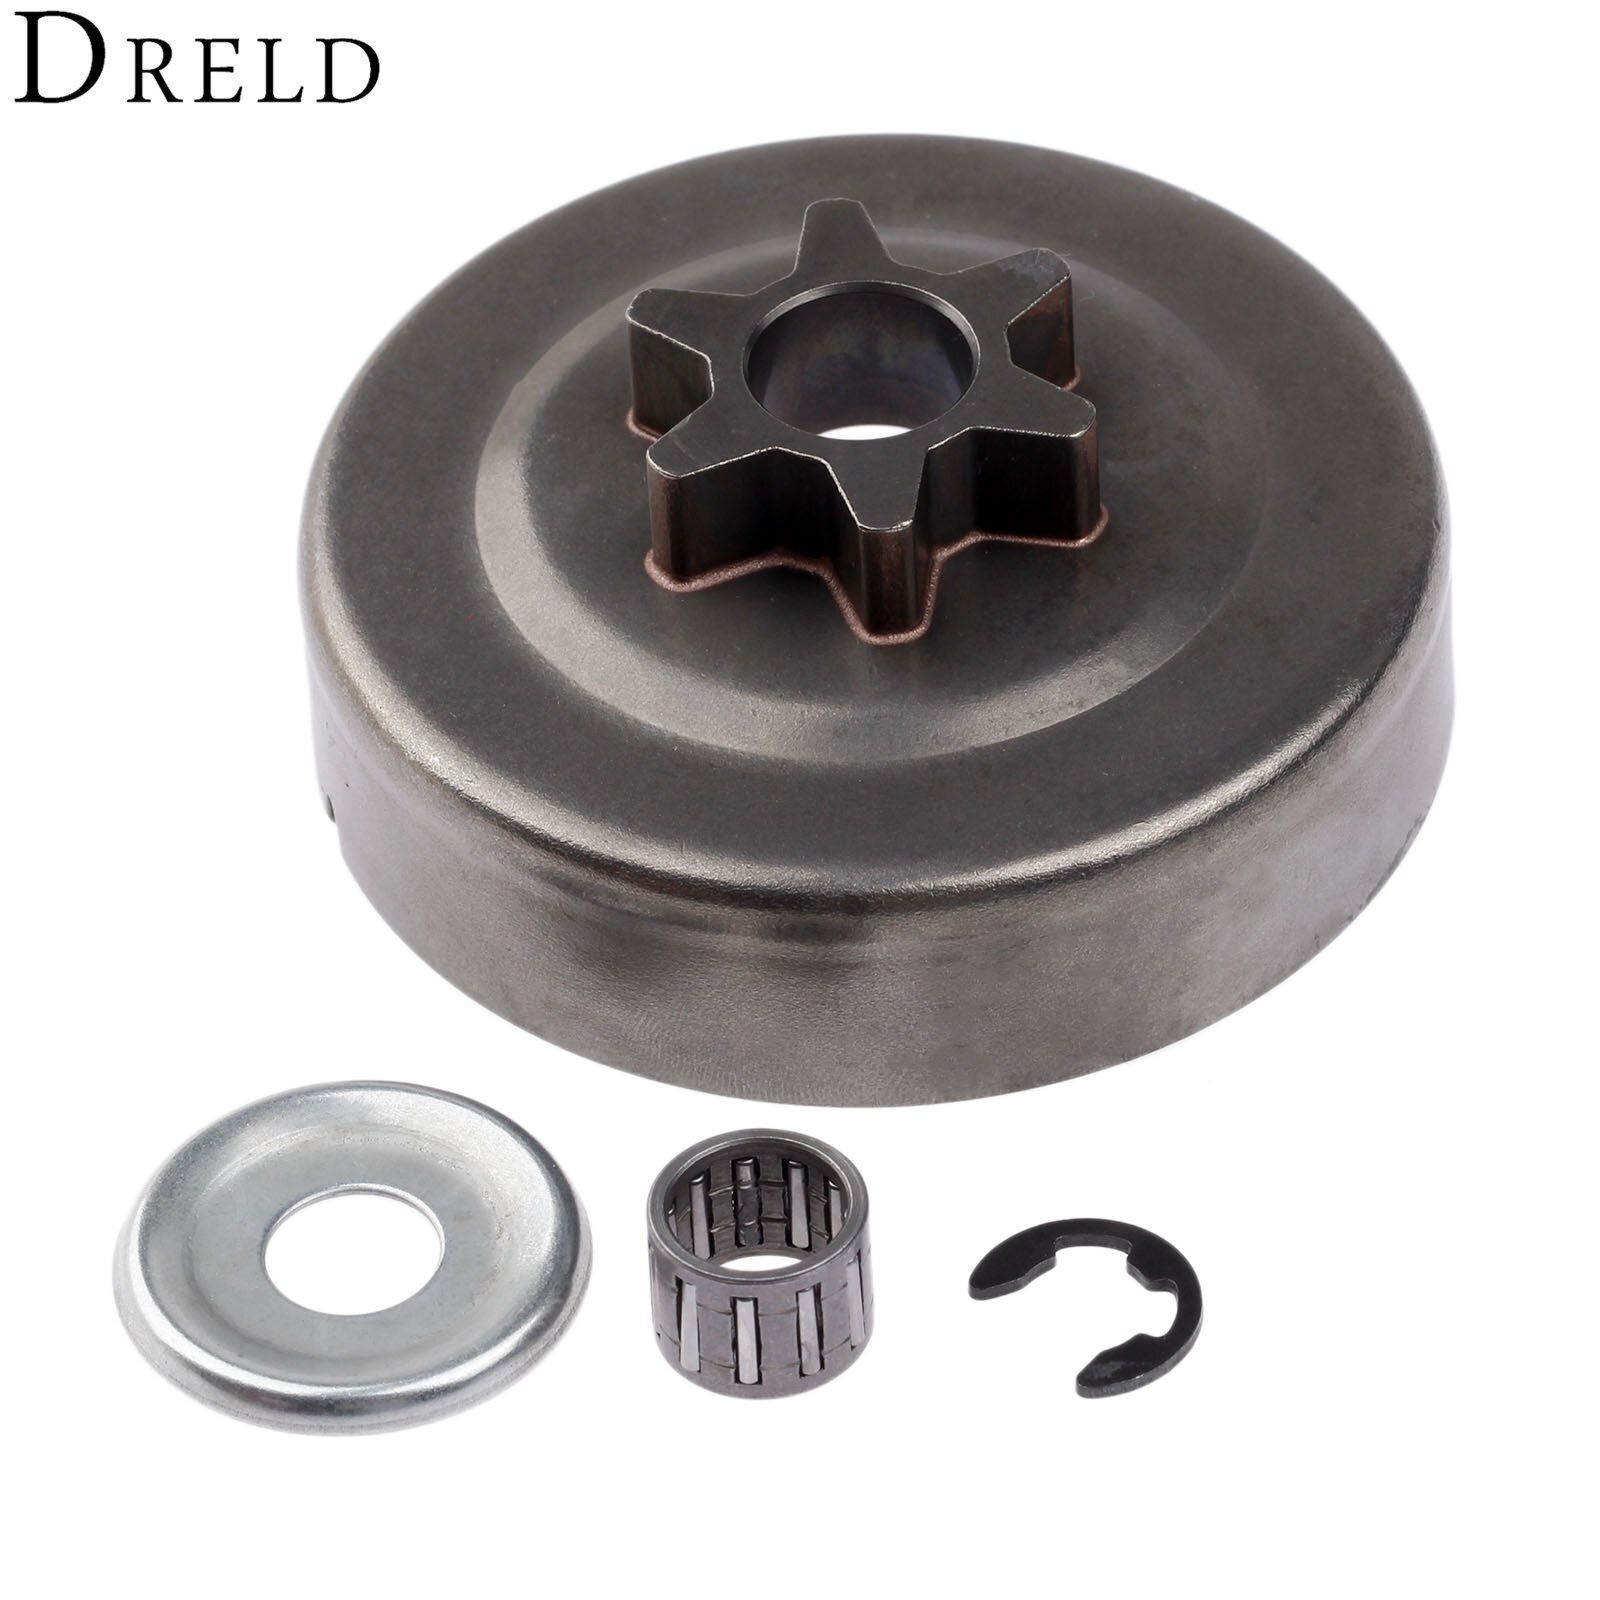 DRELD 3/8 6T Clutch Drum Sprocket Washer E-Clip Kit For STIHL Chainsaw 017 018 021 023 025 MS170 MS180 MS210 MS230 MS250 1123